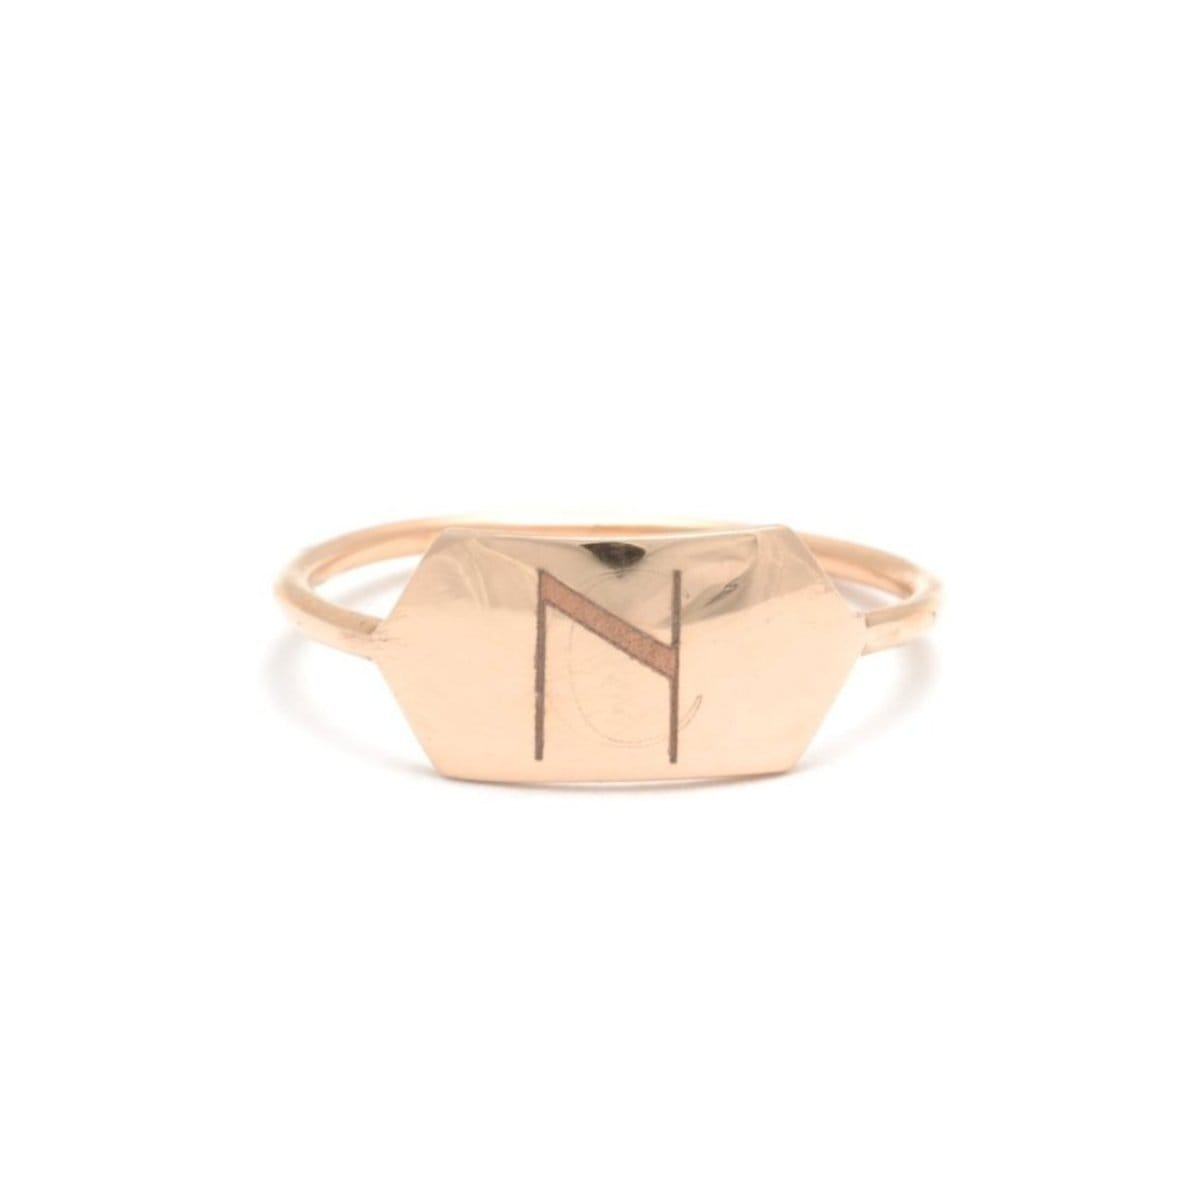 Engravable Monogramed Ring